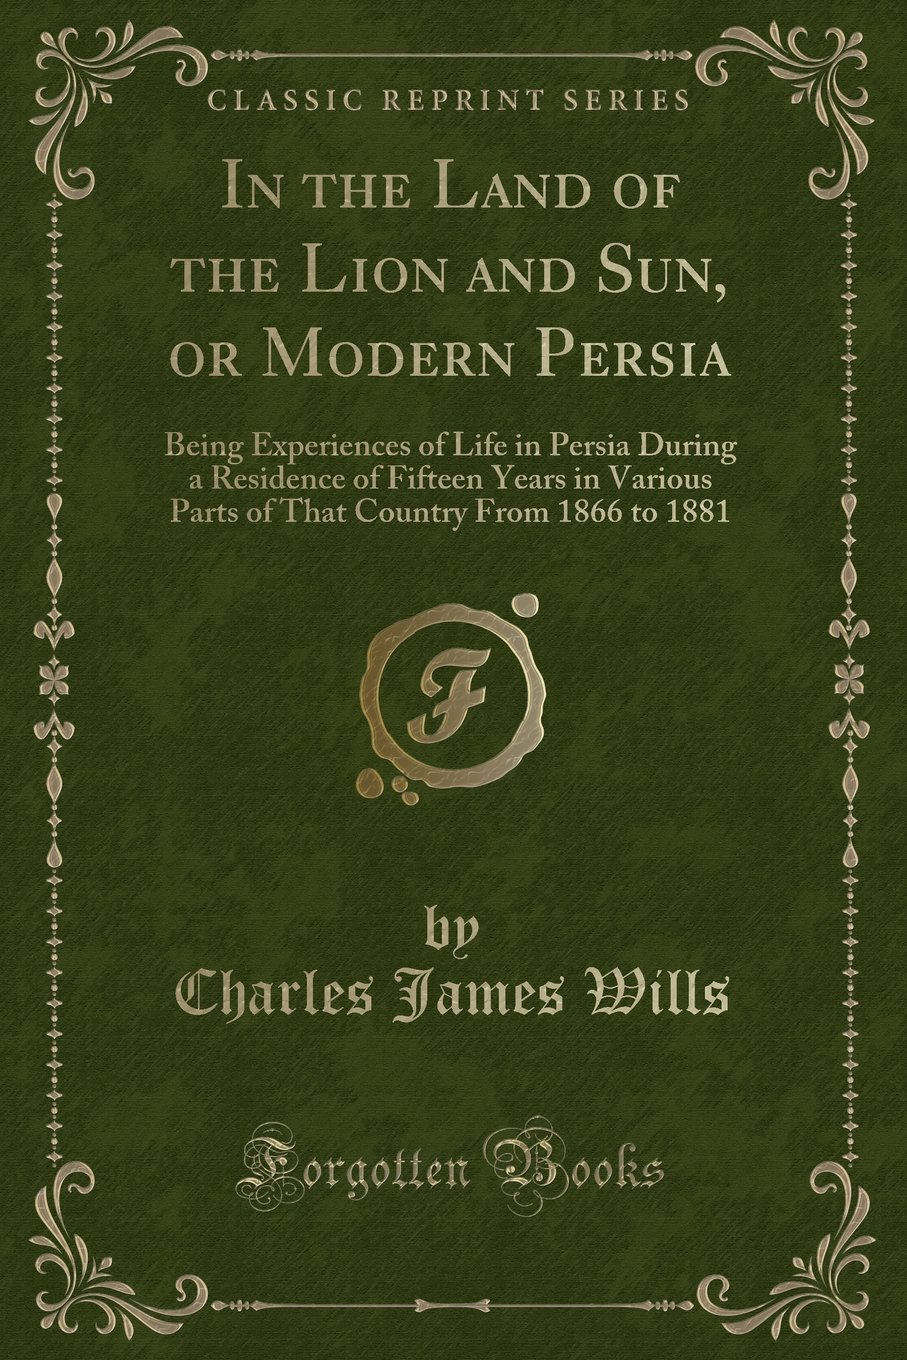 In the Land of the Lion and Sun, or Modern Persia: Being Experiences of Life in Persia During a Residence of Fifteen Years in Various Parts of That Country From 1866 to 1881 (Classic Reprint) pdf